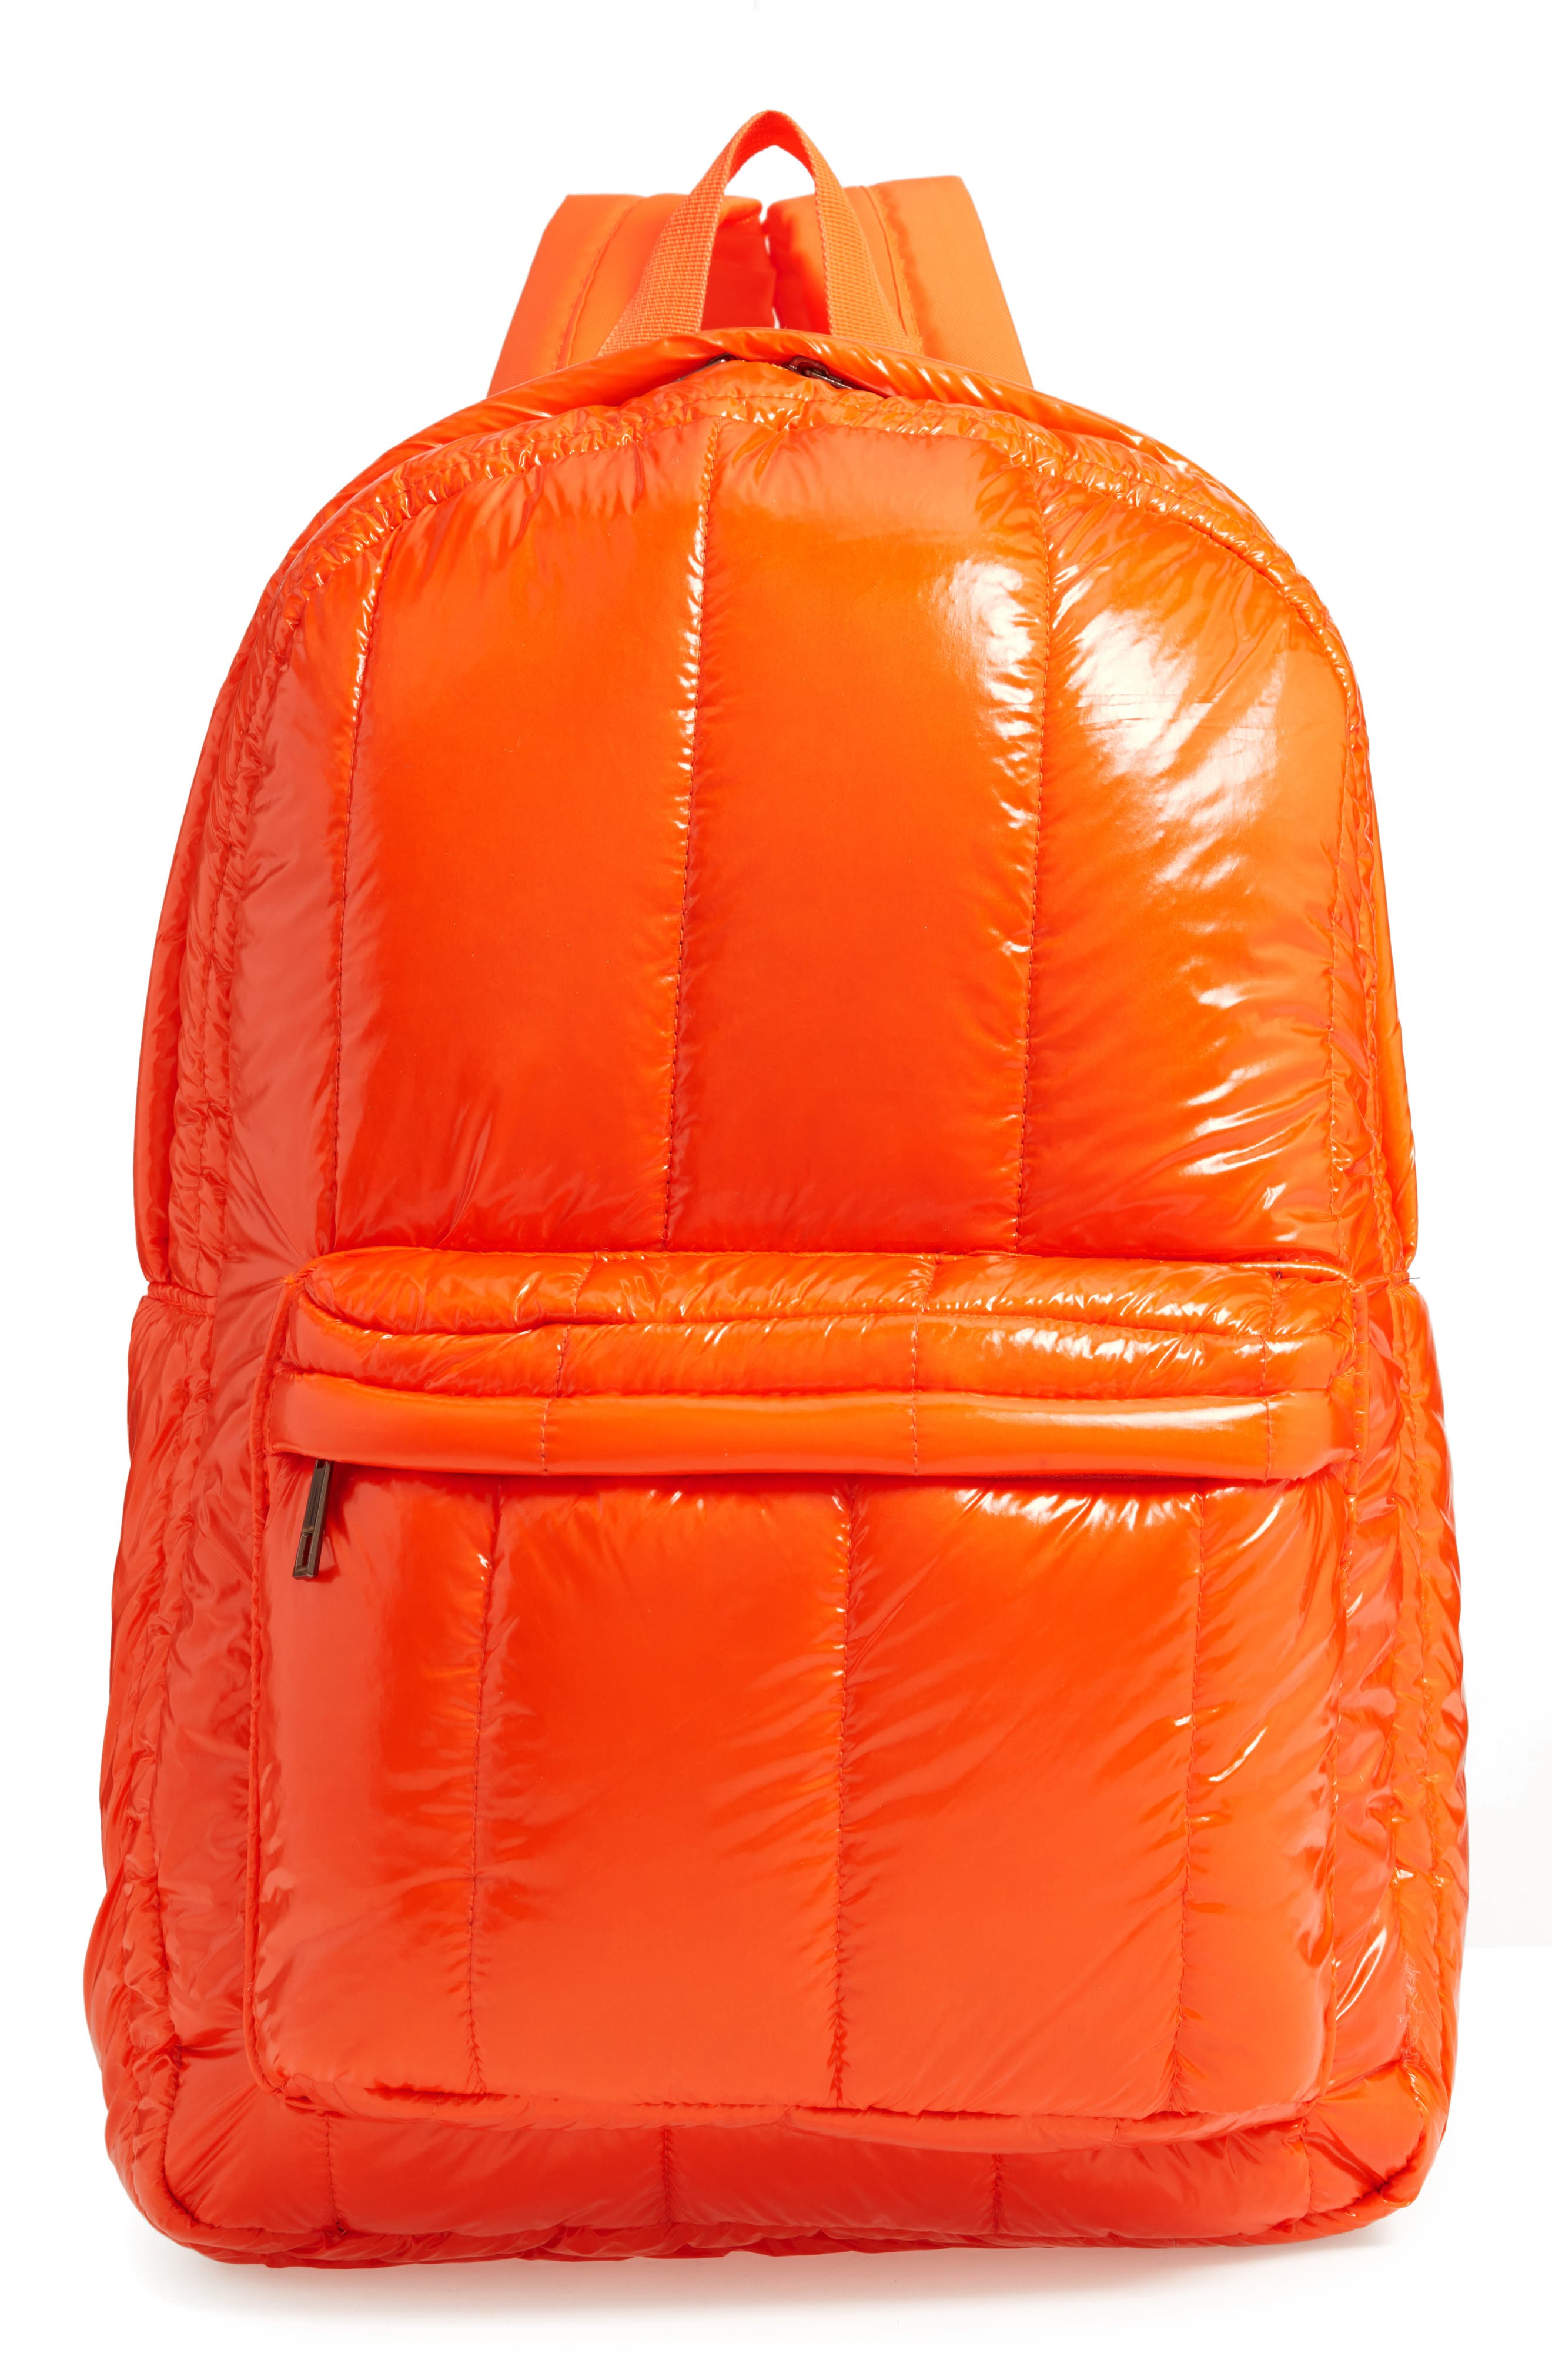 Jane & Berry Quilted Puffer Backpack - Orange